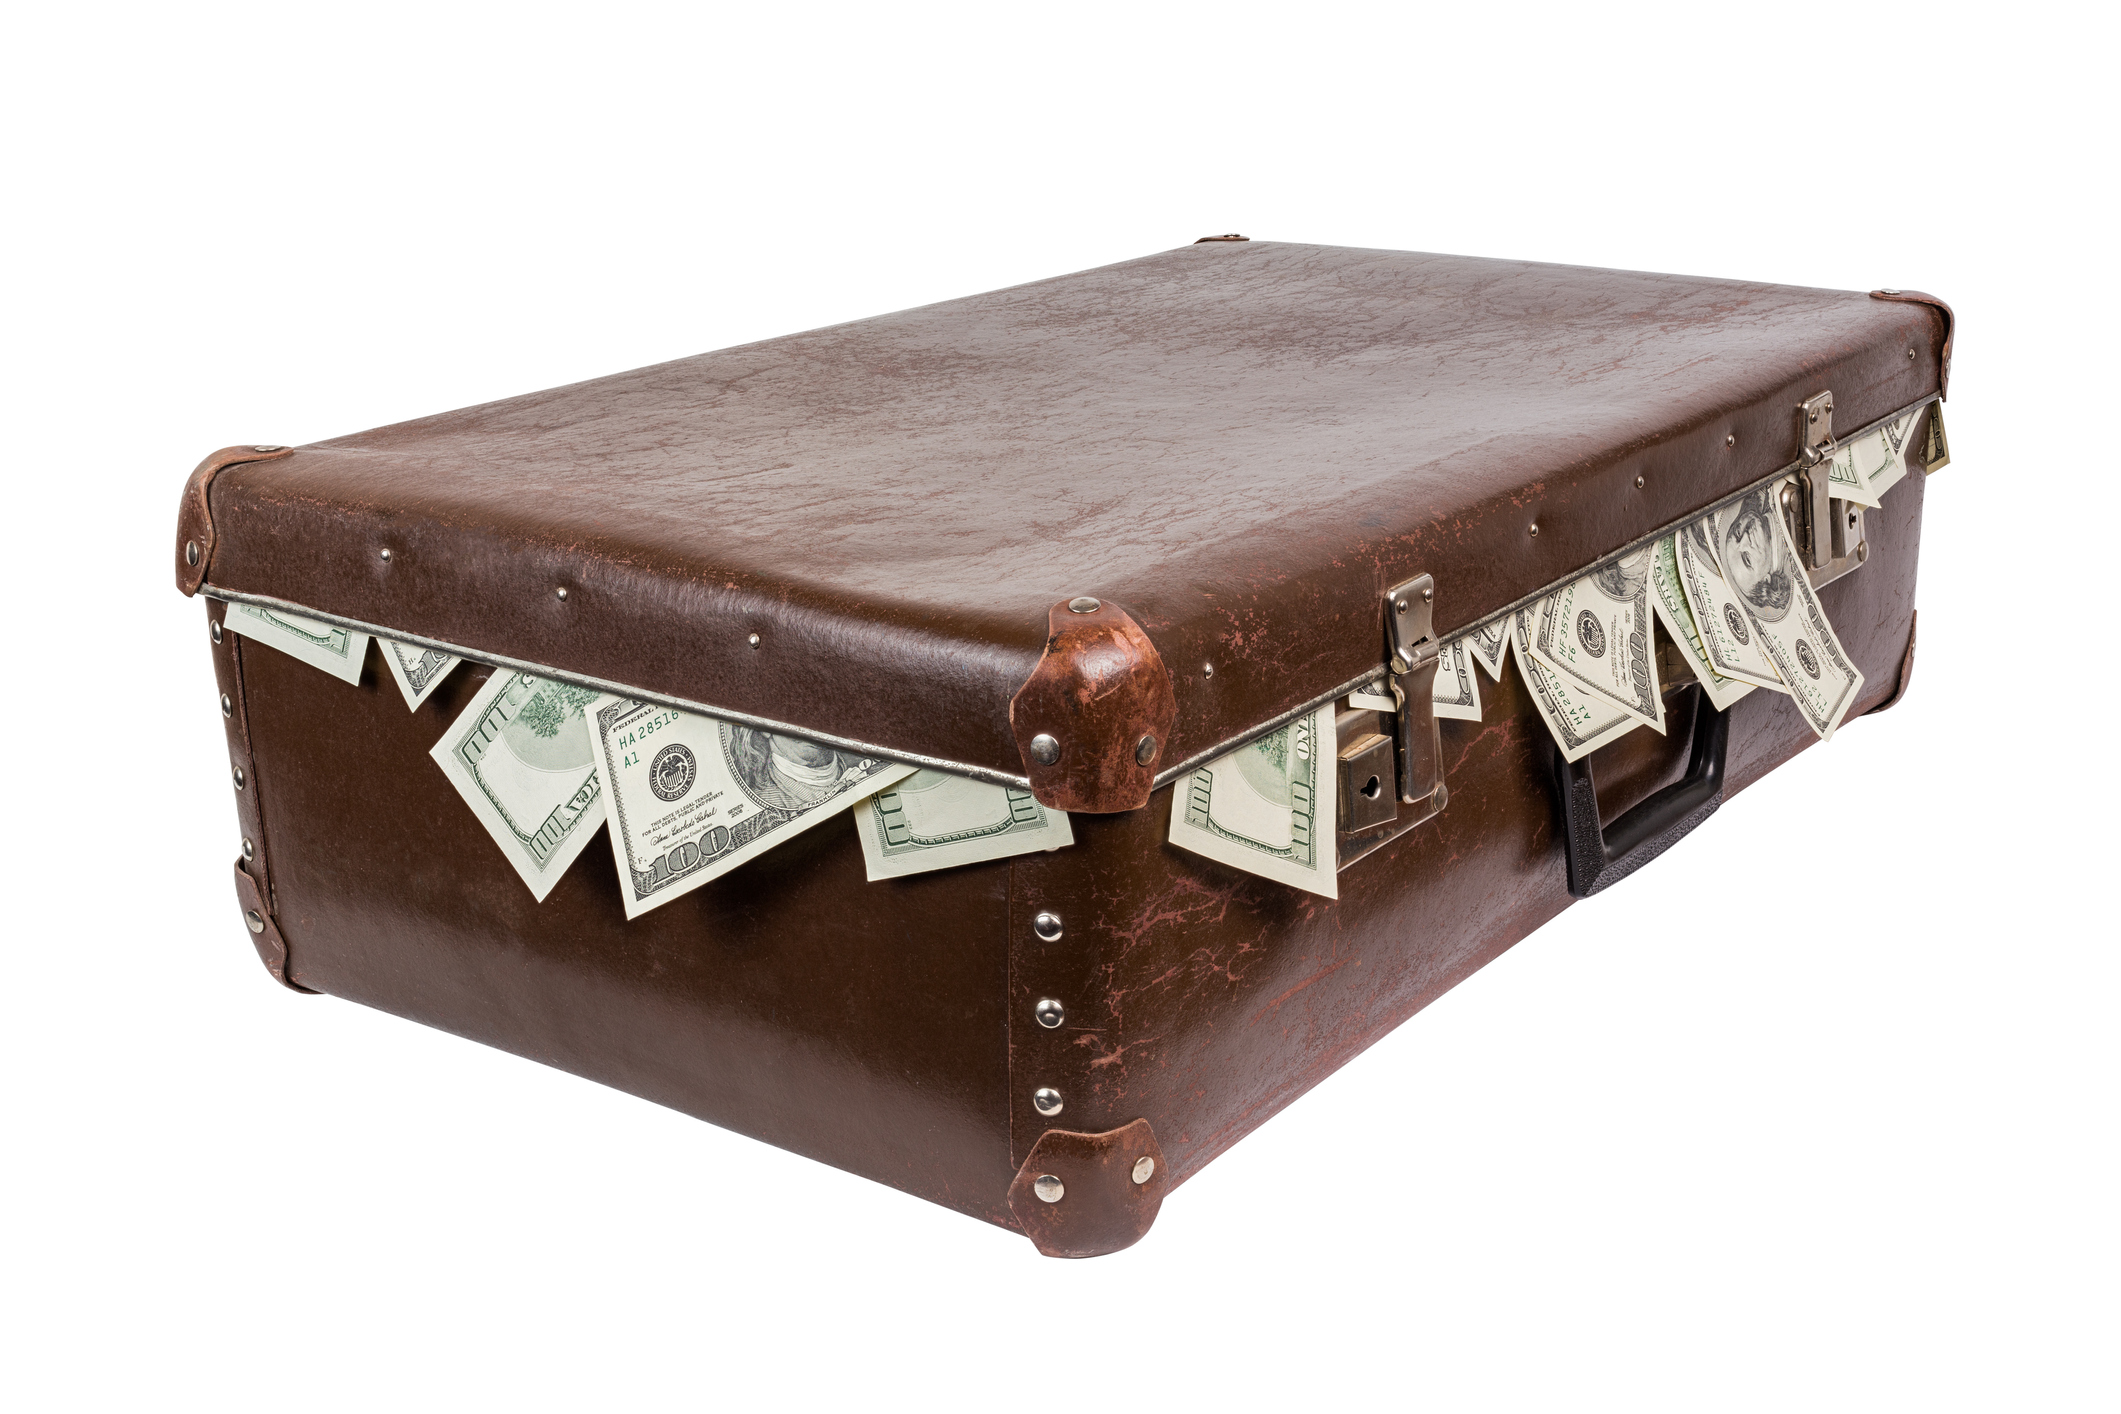 Suitcase full of dollar notes.